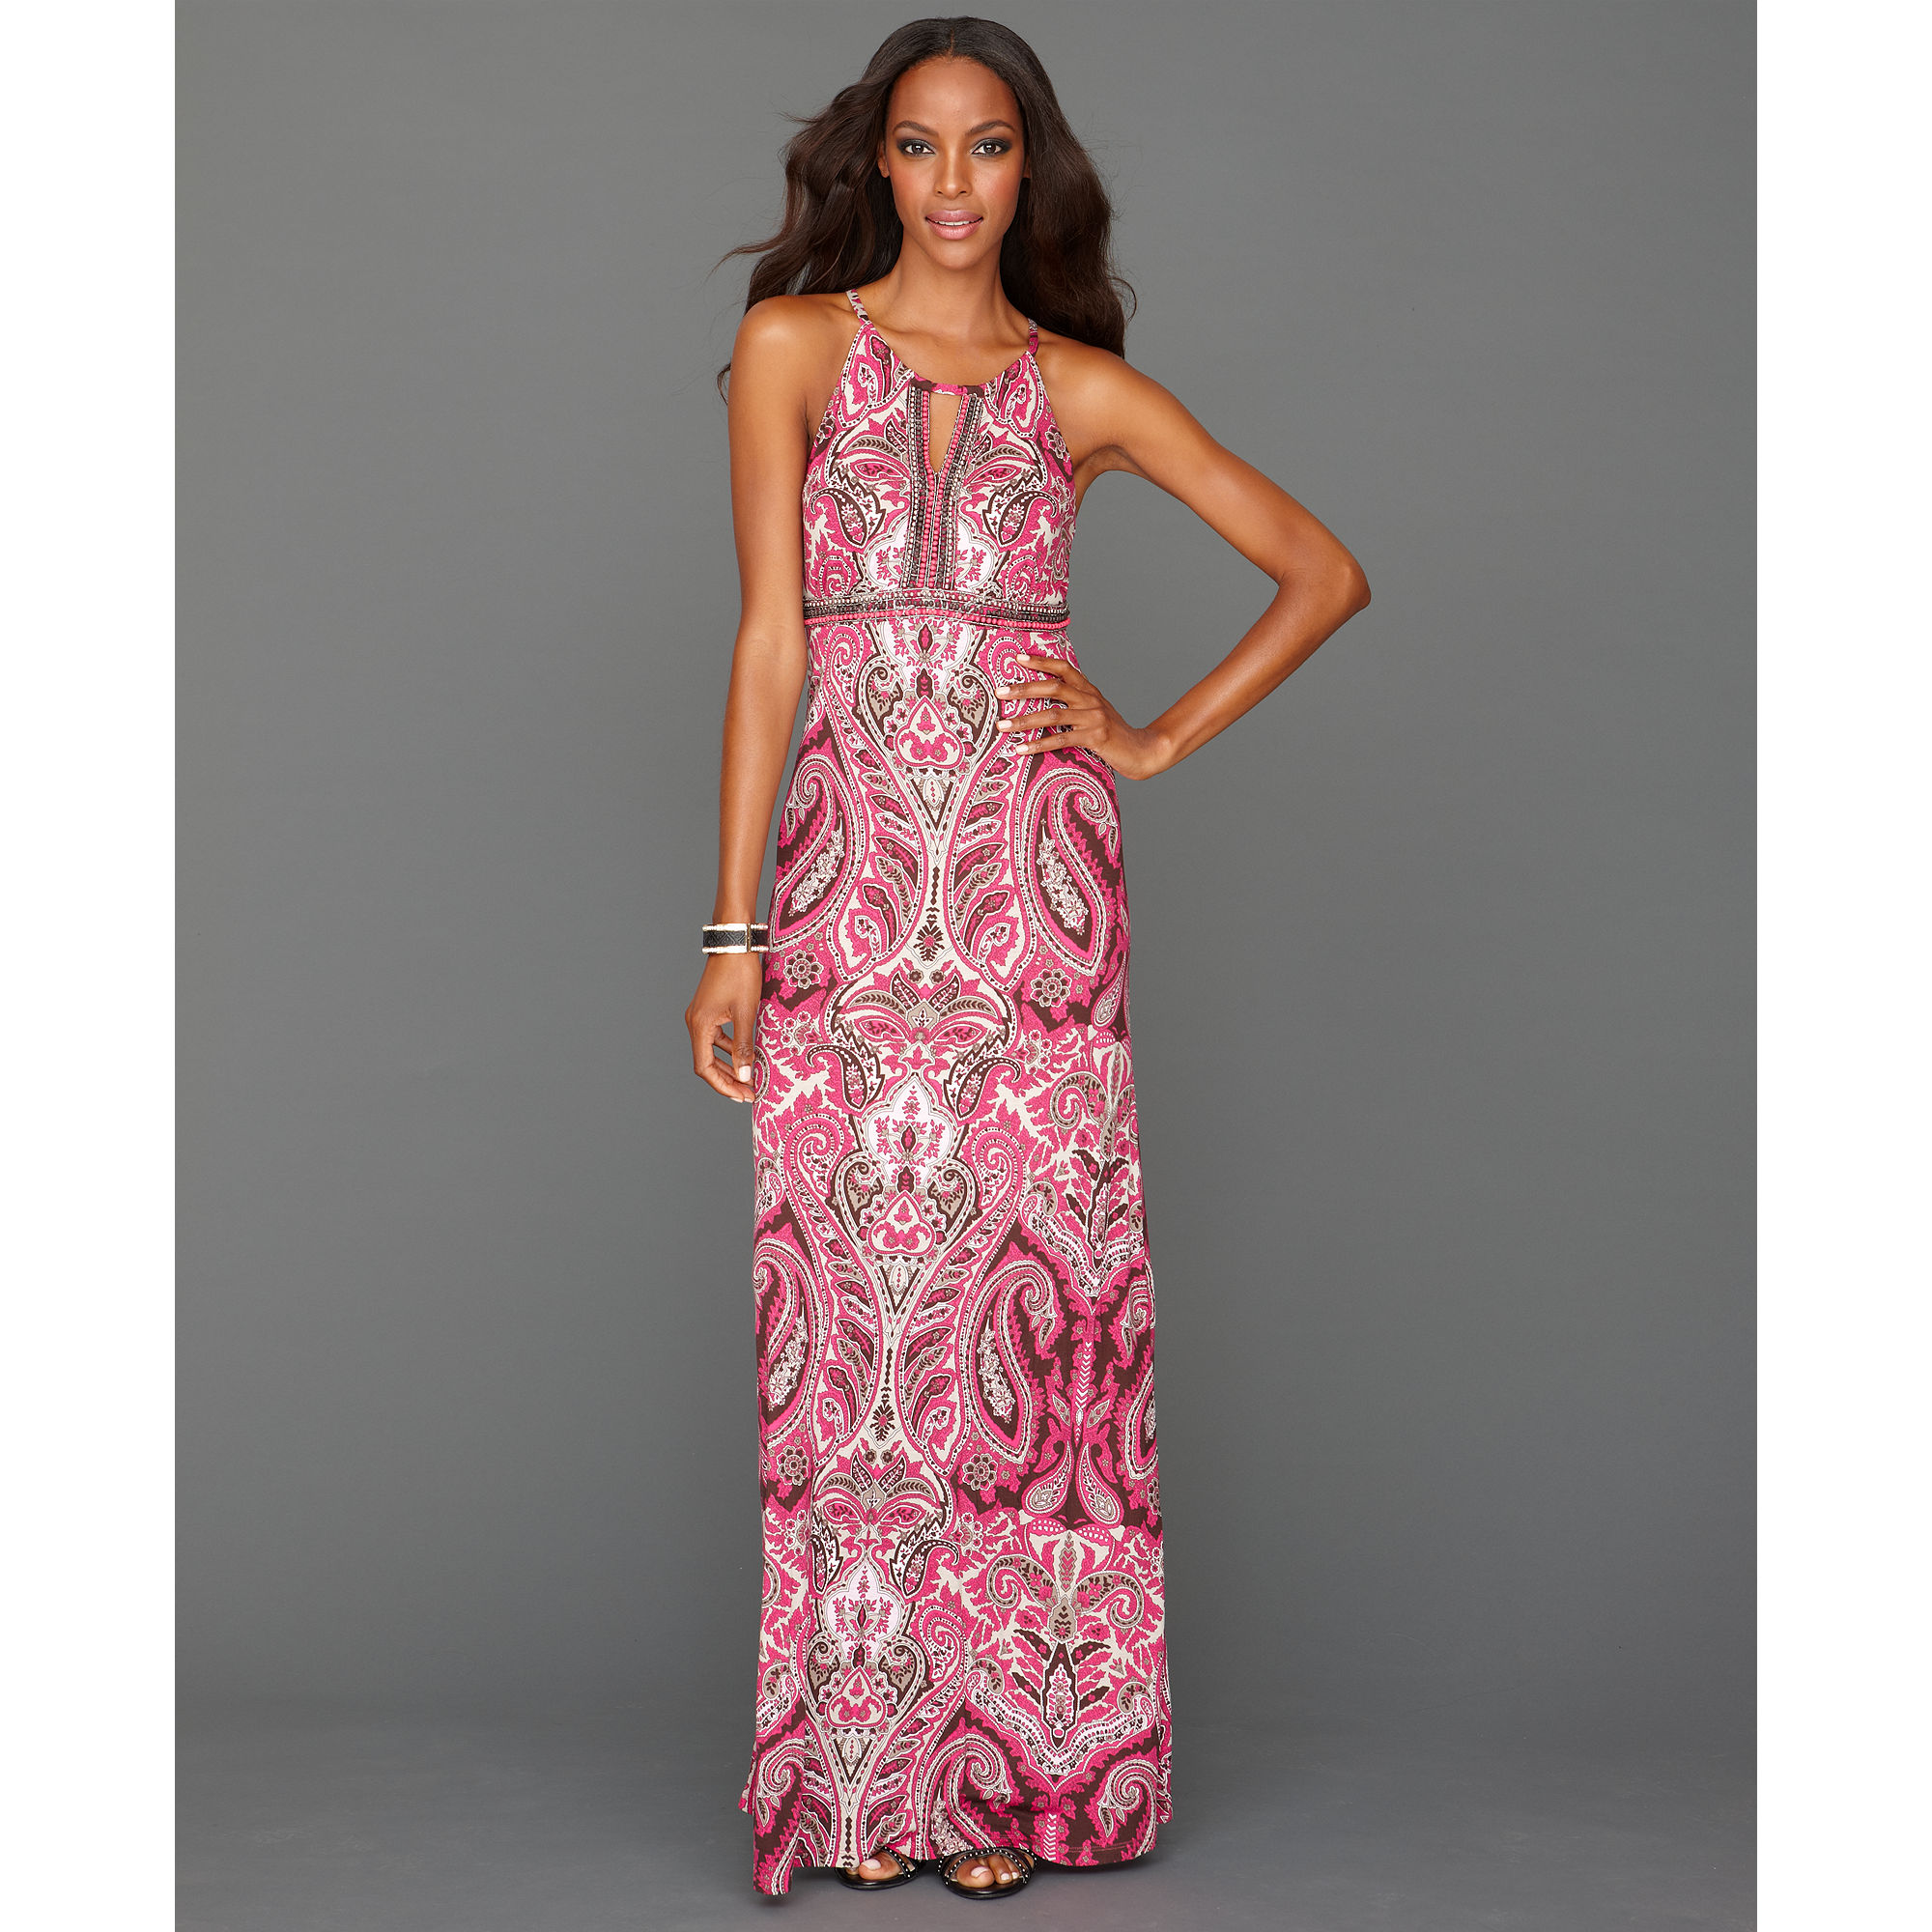 Inc international concepts Halter Paisleyprint Maxi in Purple - Lyst